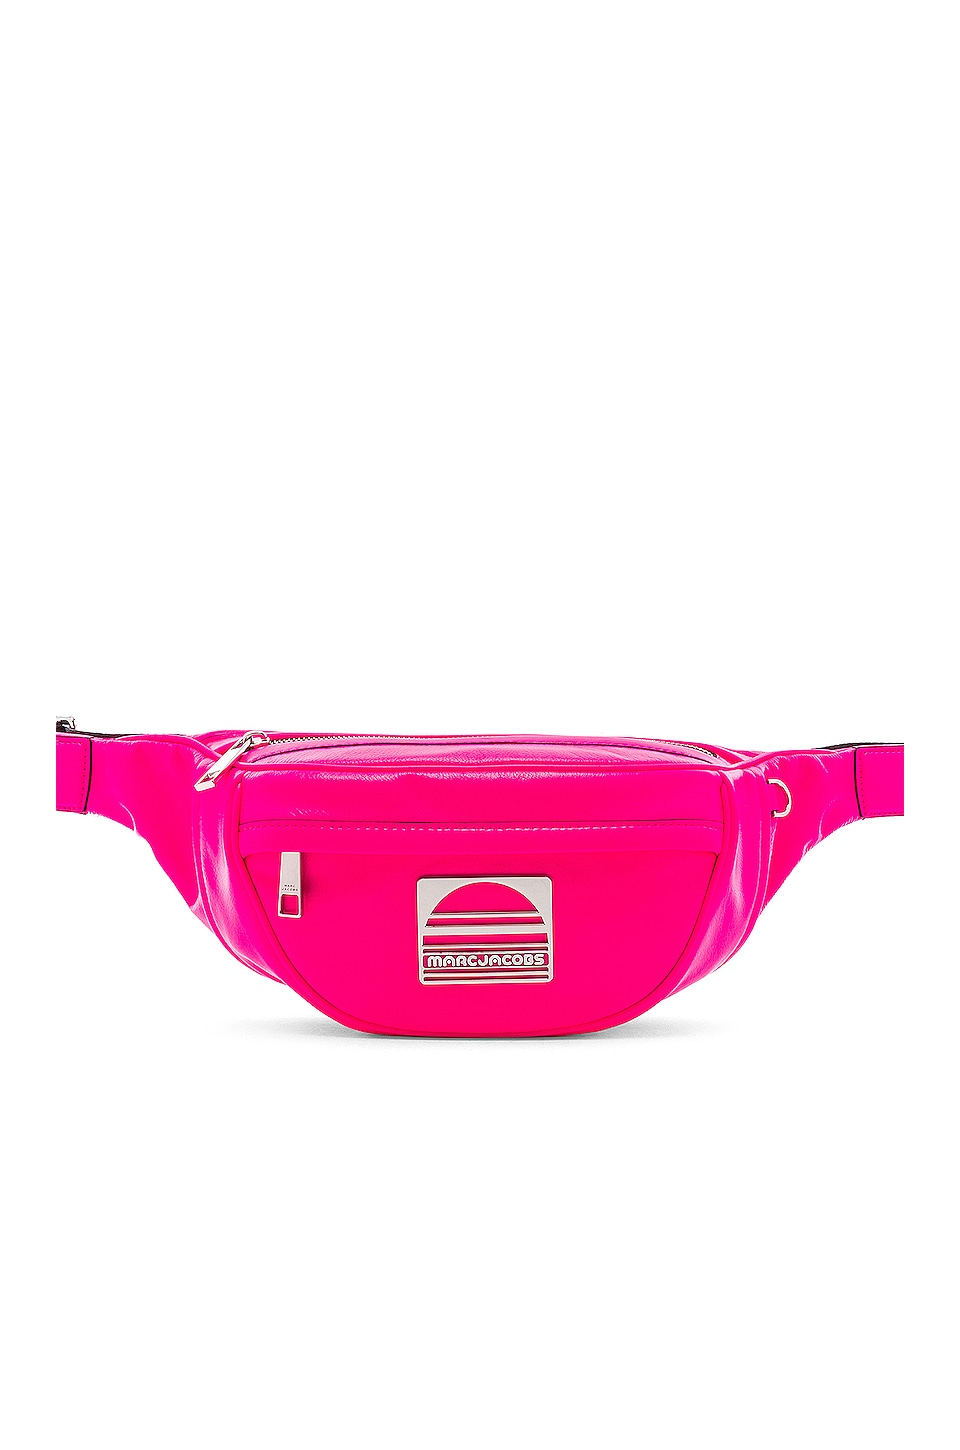 Marc Jacobs Sport Fanny Pack in Bright Pink